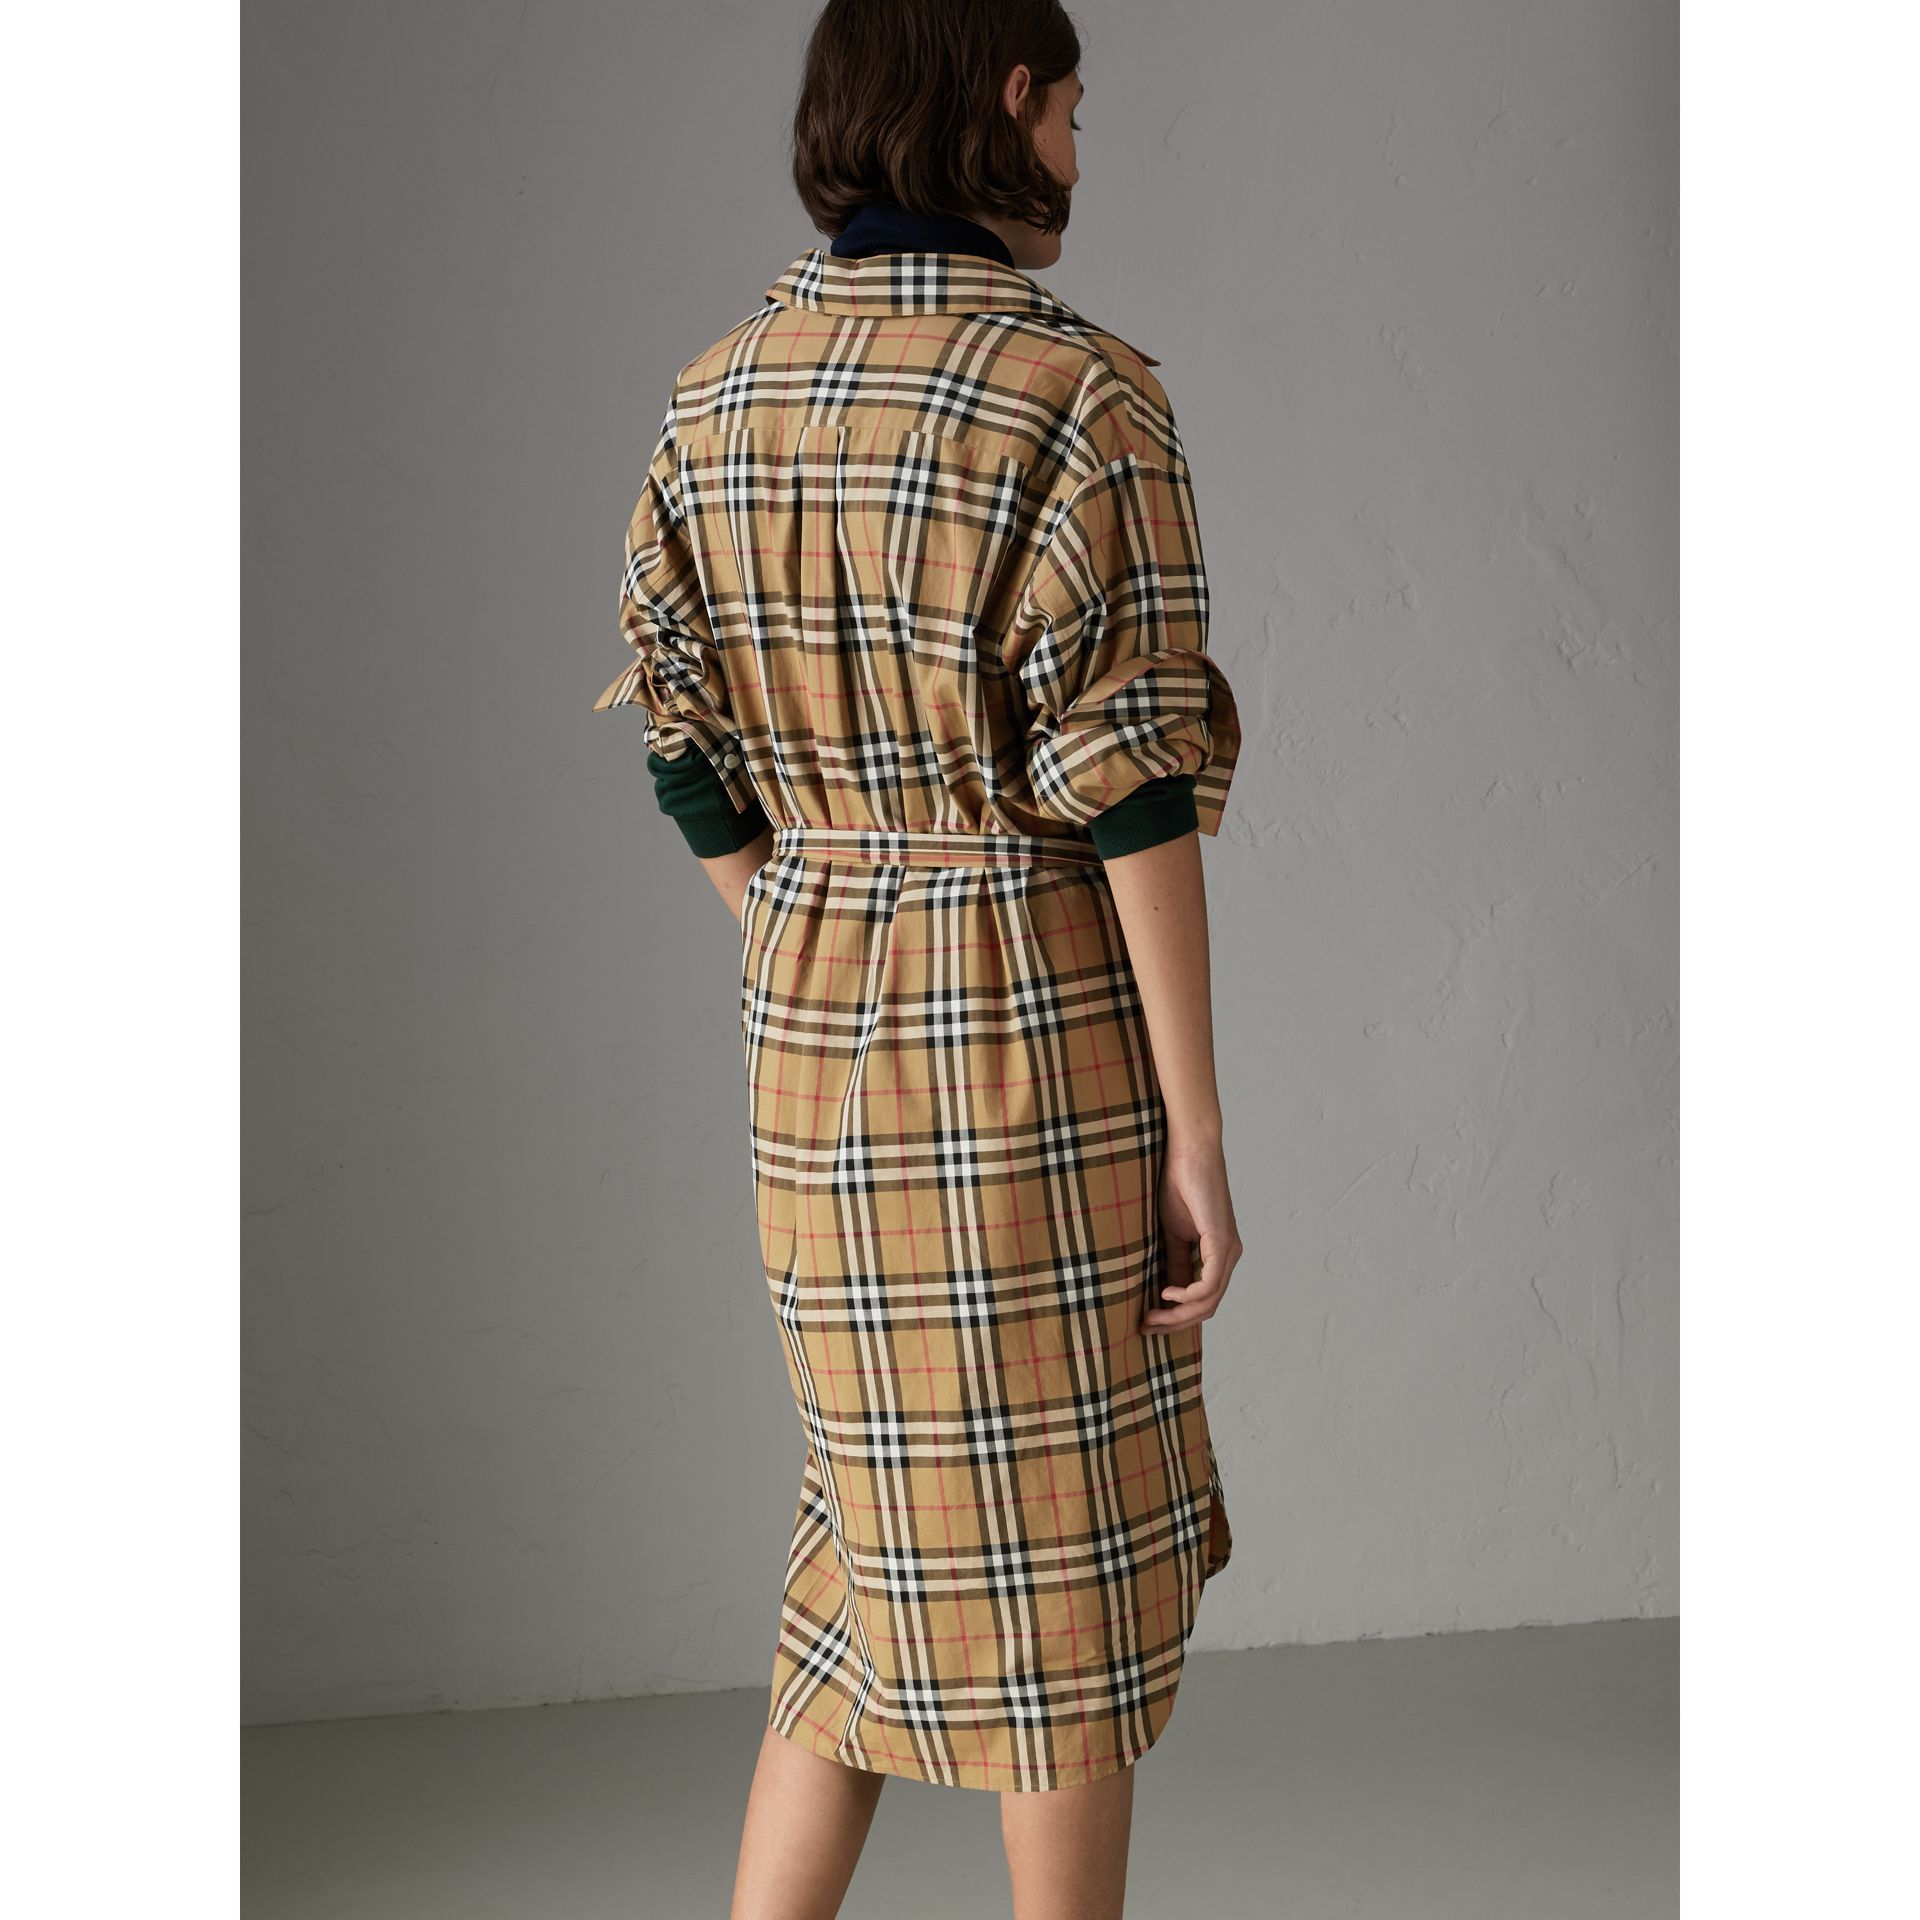 Tie-waist Vintage Check Cotton Shirt Dress in Antique Yellow - Women | Burberry United Kingdom - gallery image 2